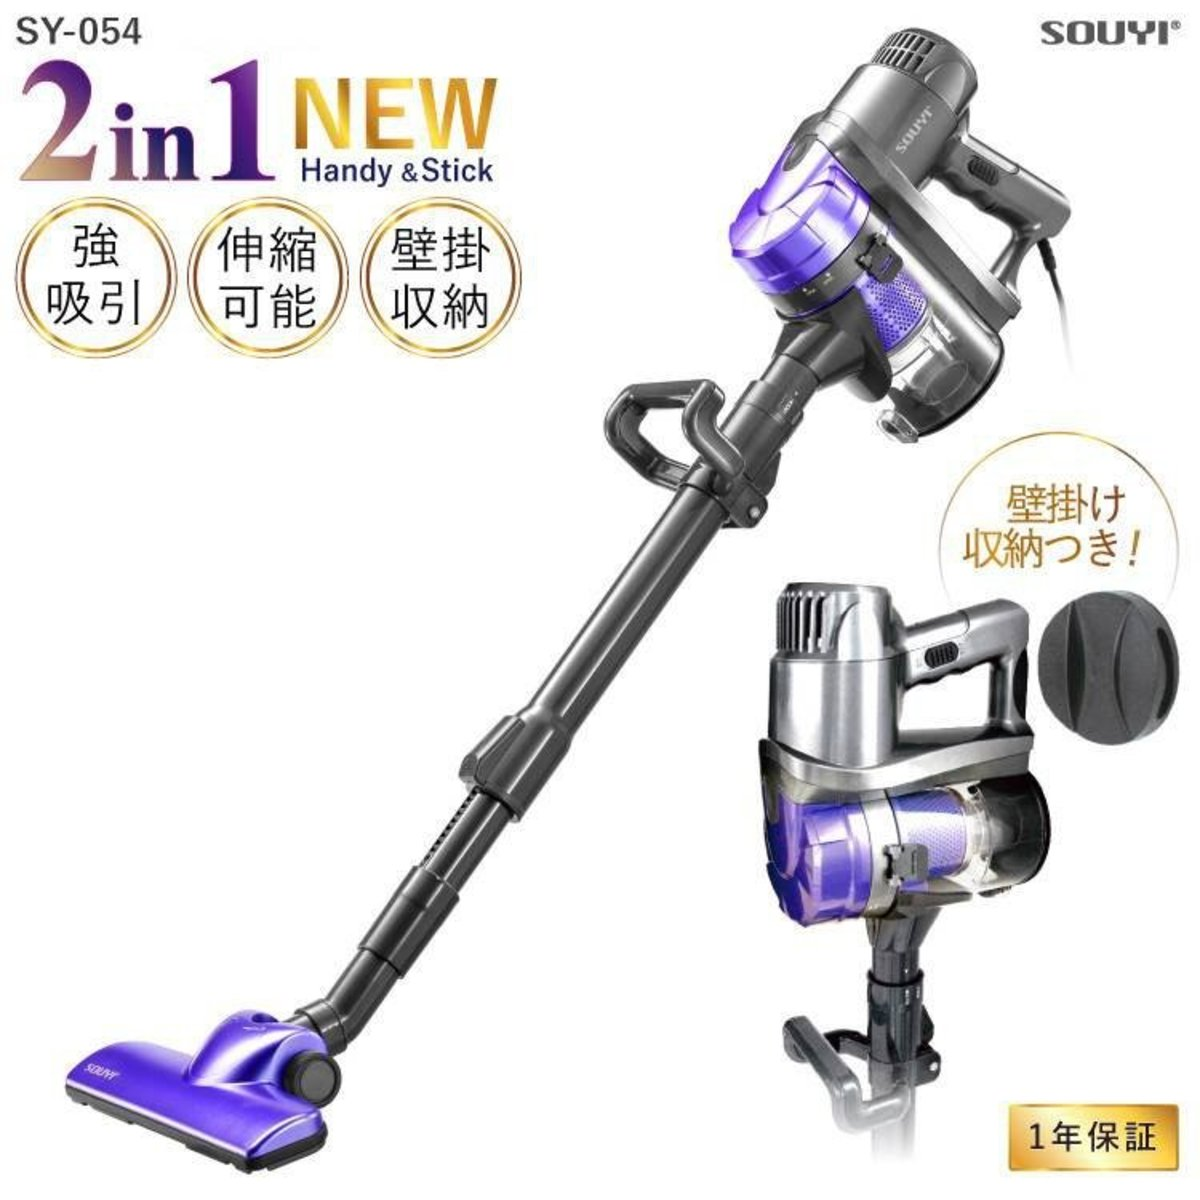 Souyi - SY-054 two-in-one lightweight cyclone vacuum cleaner